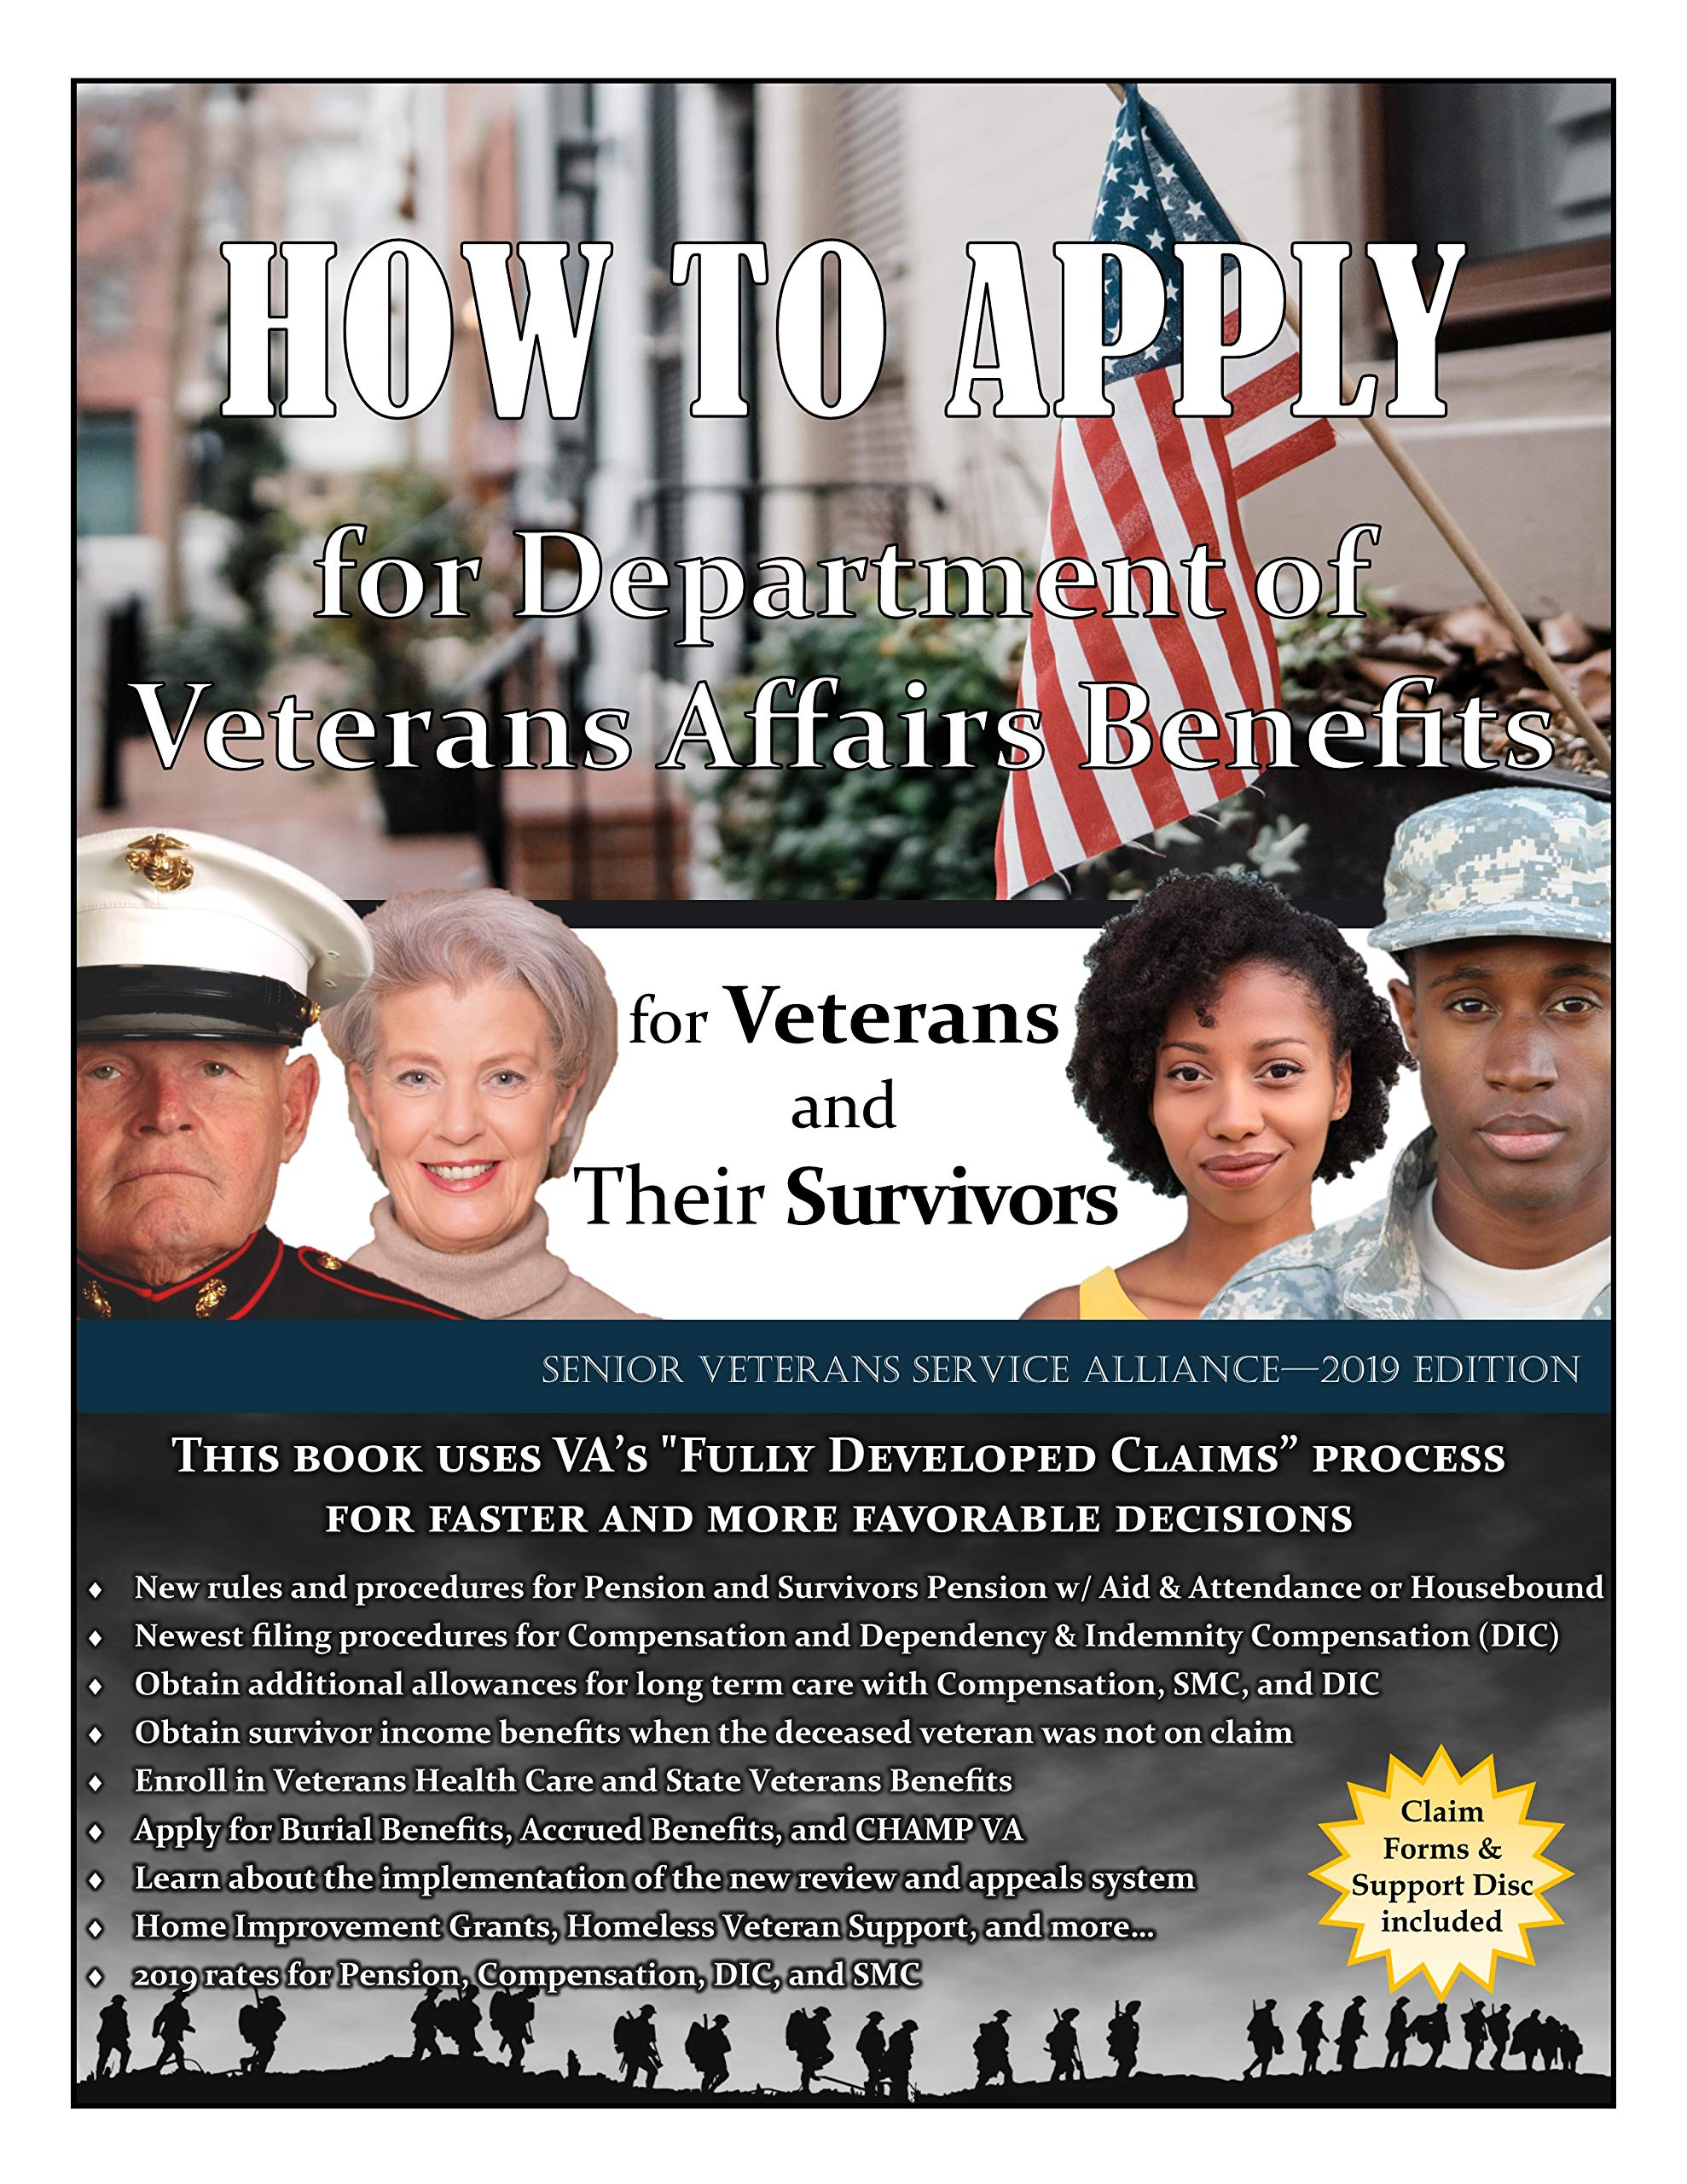 How to Apply for Department of Veterans Affairs Benefits for